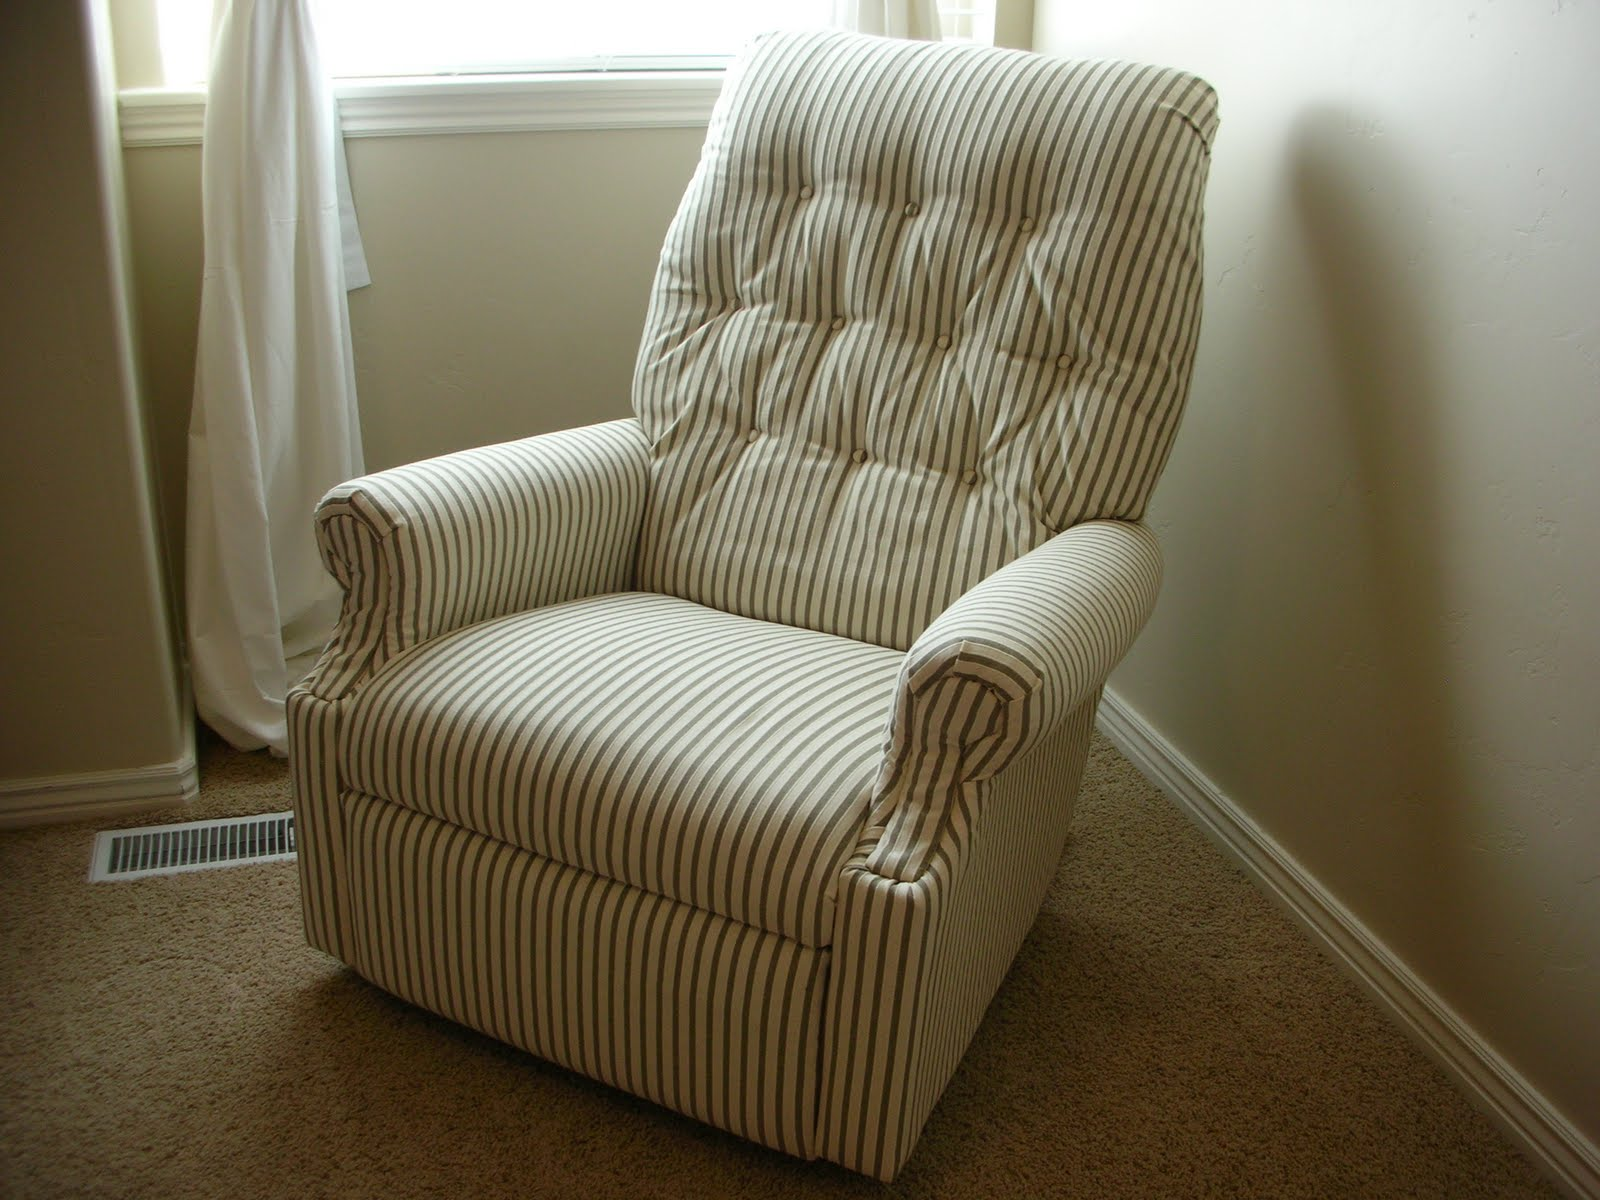 diy reupholster an old lazboy recliner